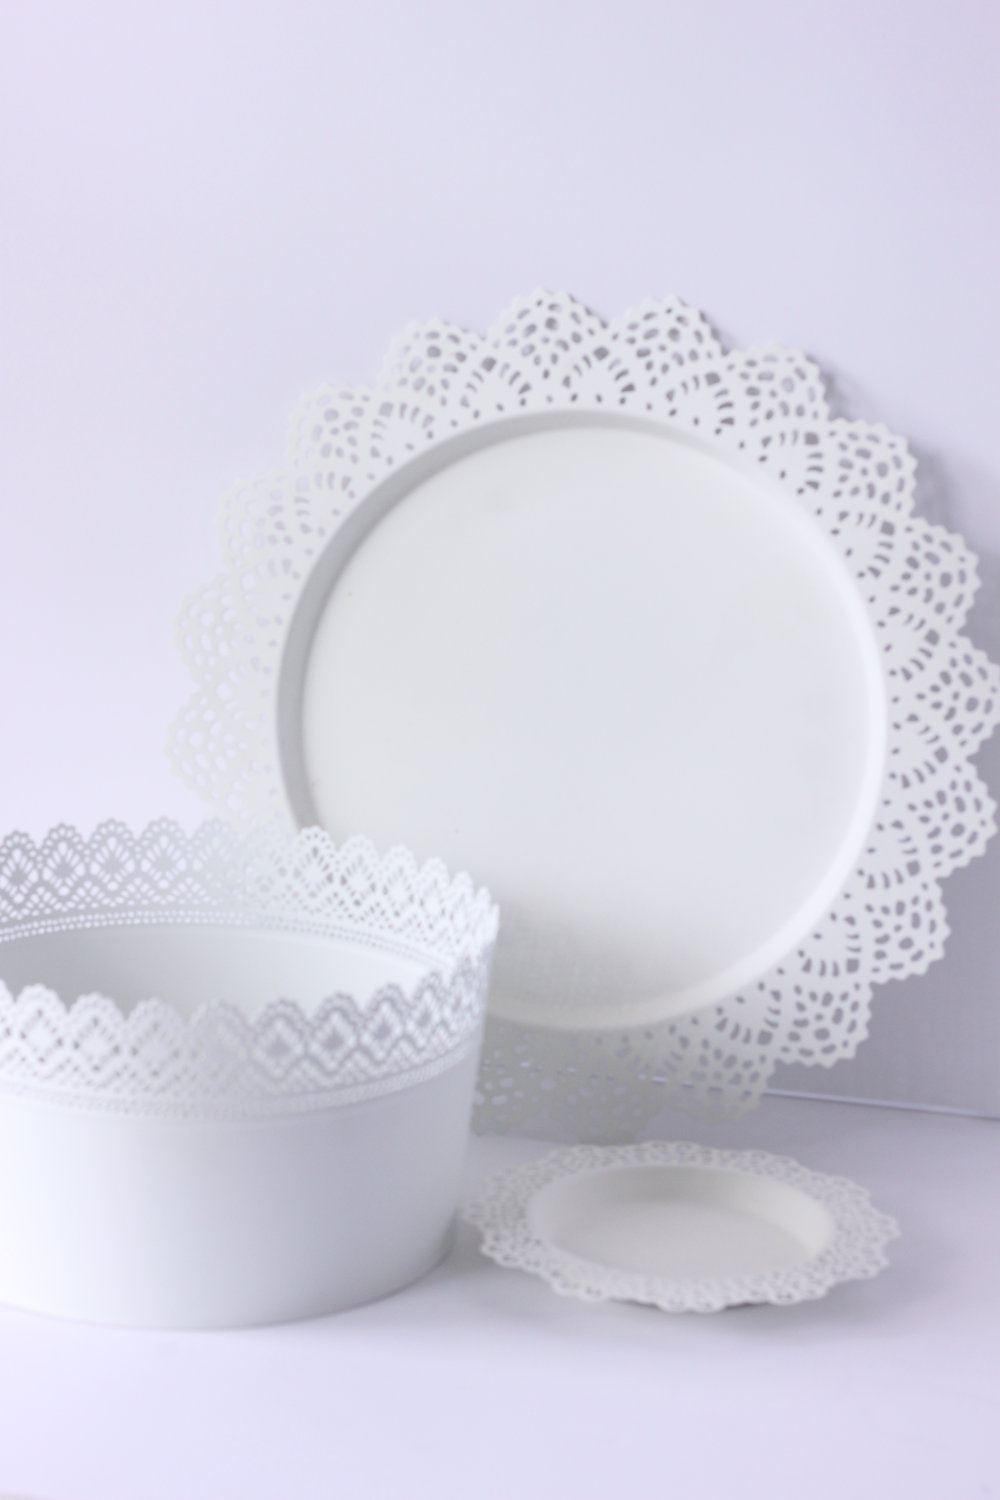 Copy of Openwork Lace Tray $4/ea.